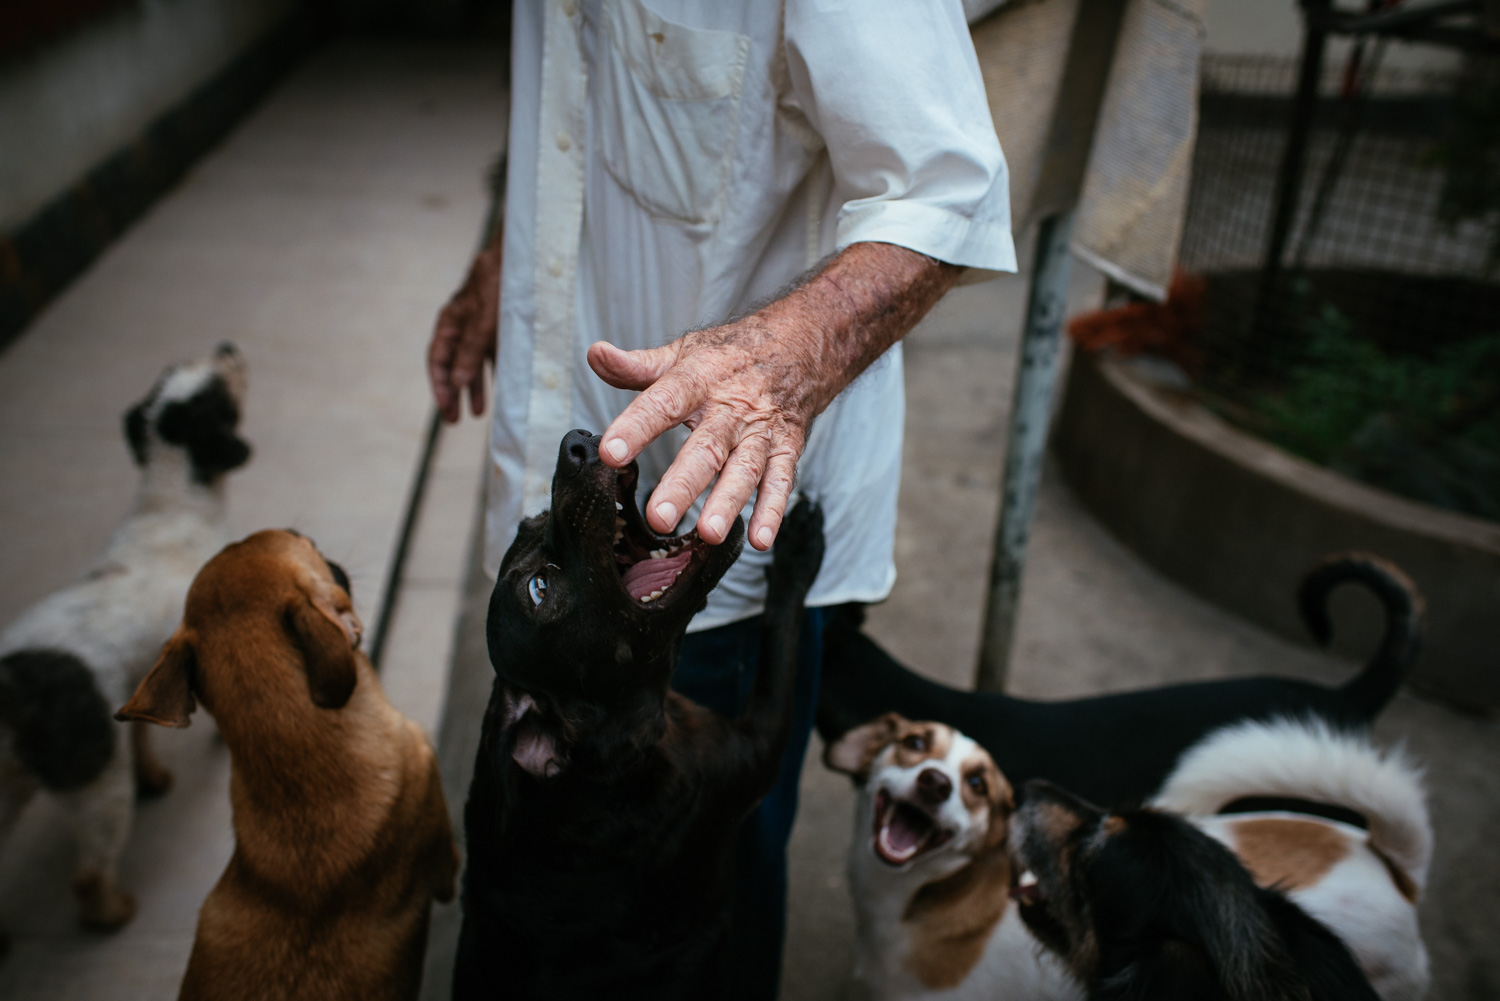 Euracy Aguiar Prado, 80, plays with some of his dogs in his backyard. Prado says they go through over 400 kg (880 lbs) of dog food per month. Rio de Janeiro, Brazil, 03-15-2015.